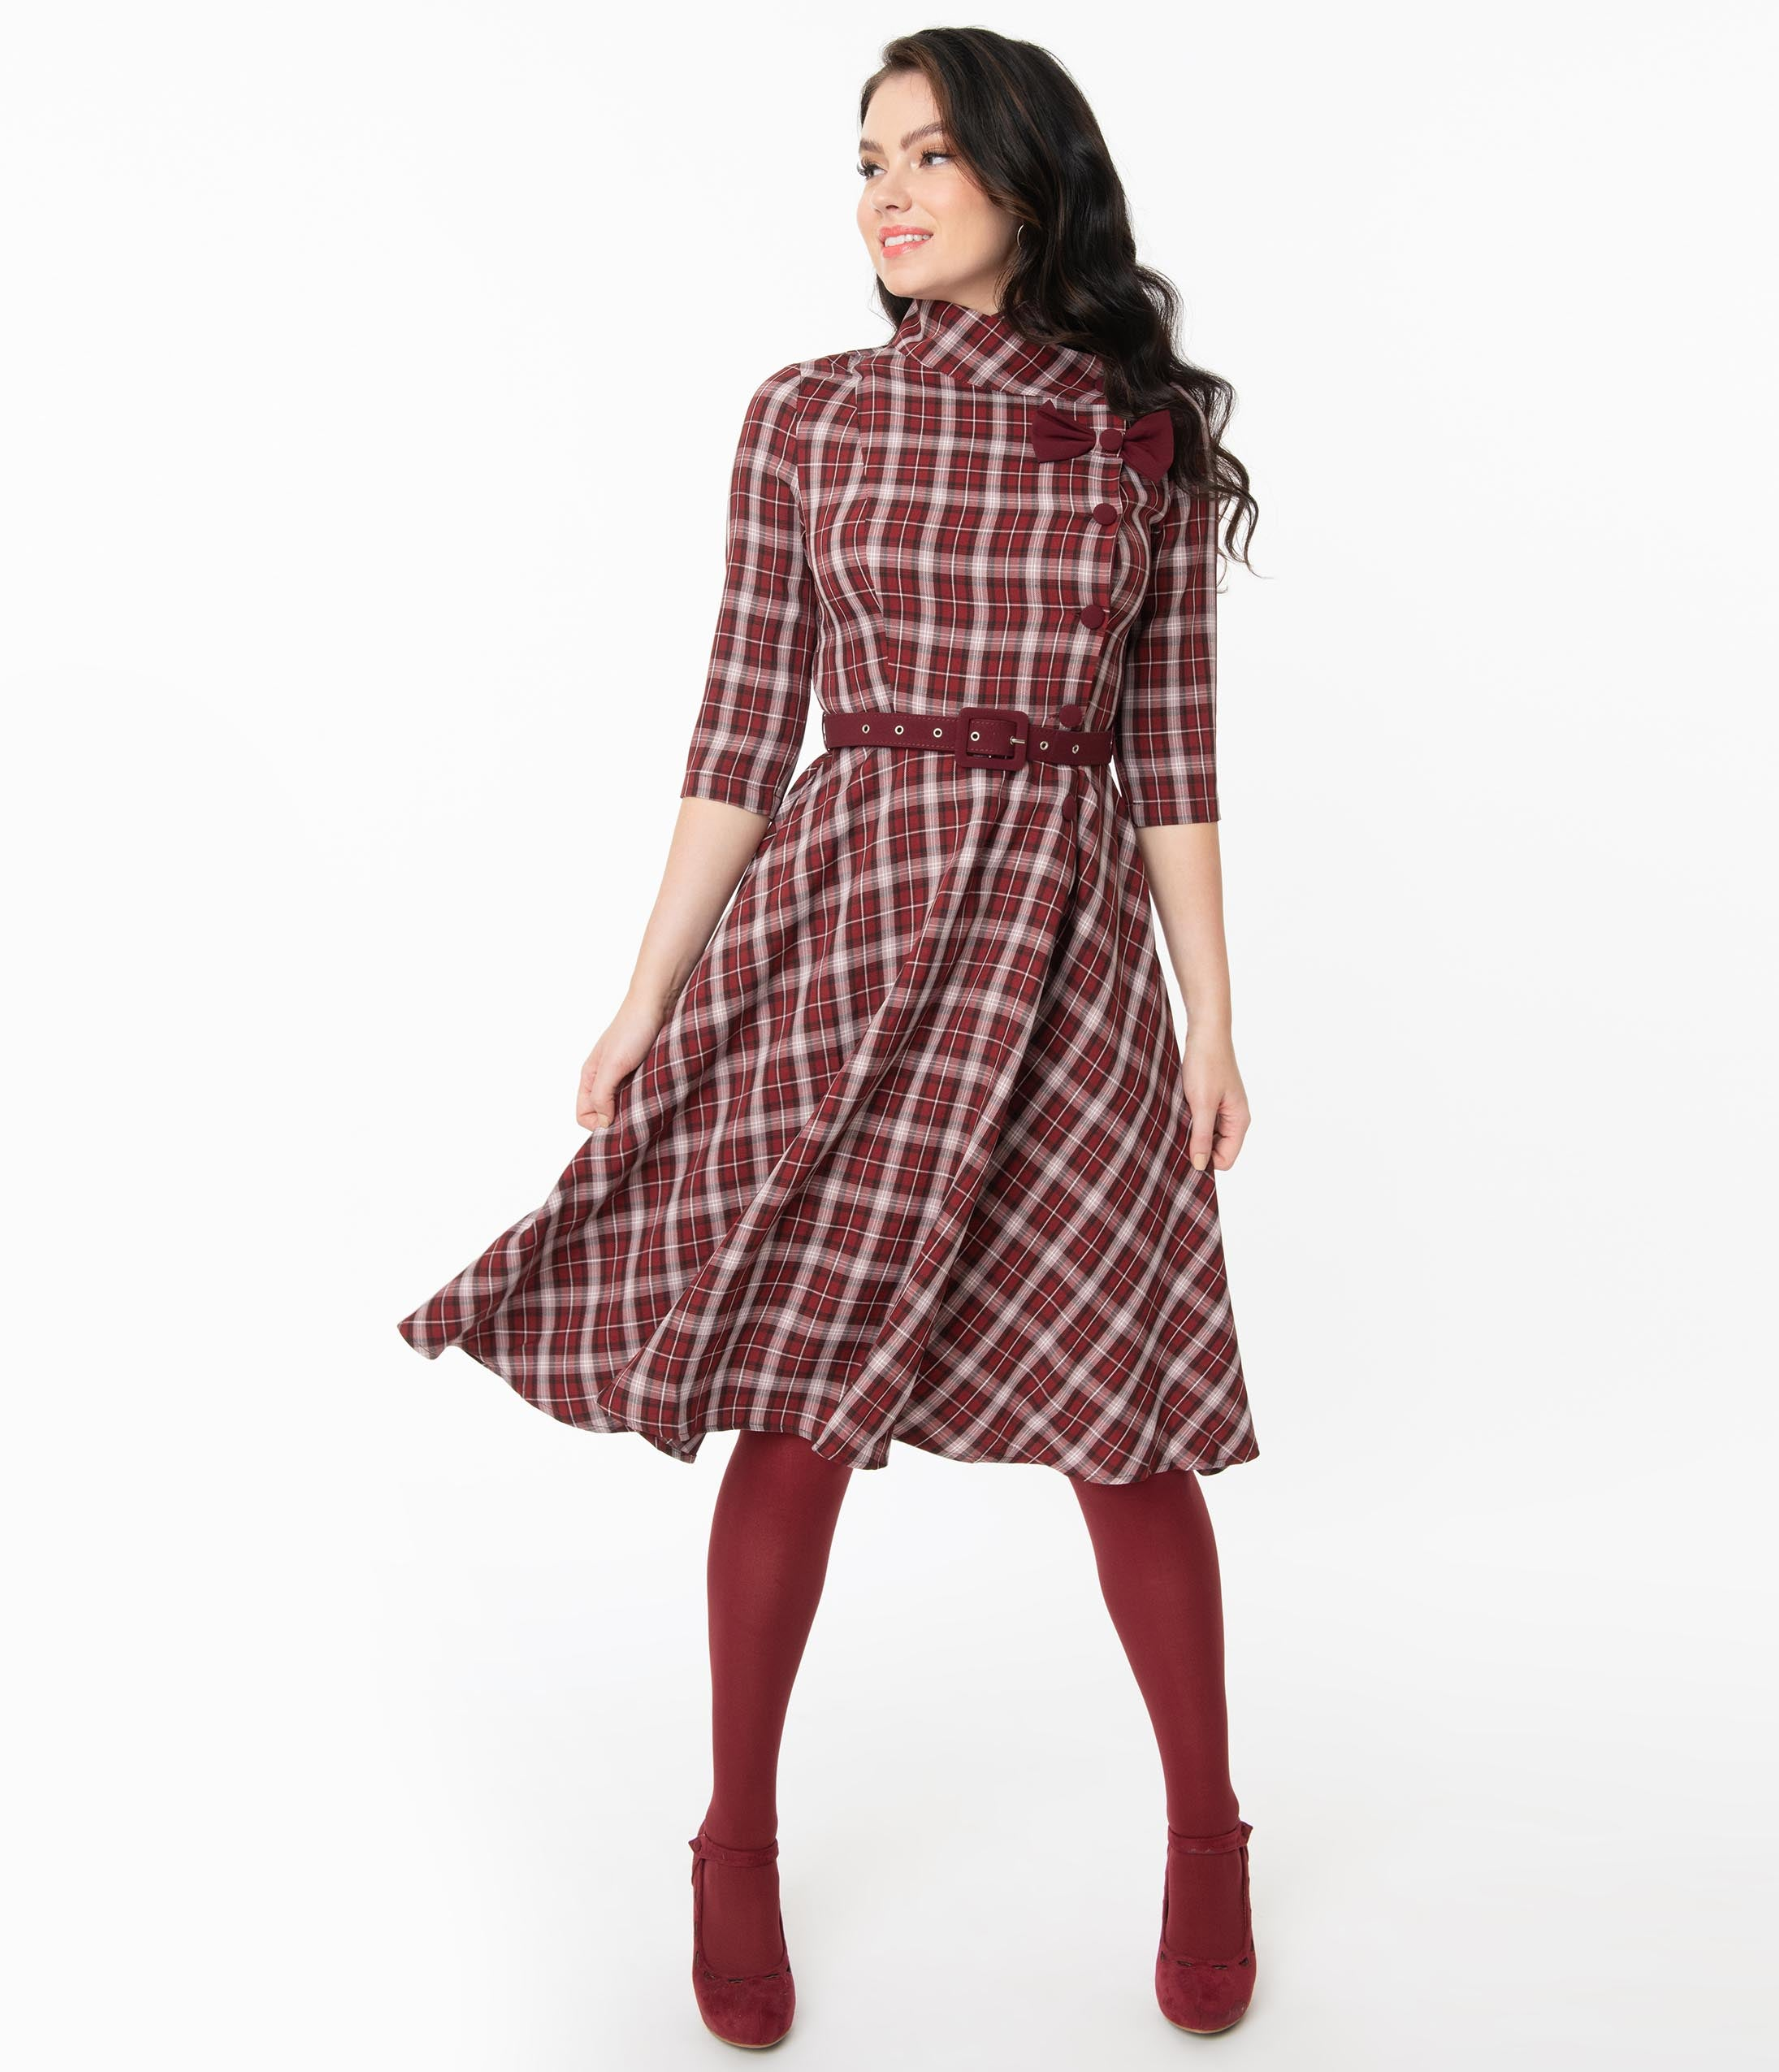 1950s Housewife Dress | 50s Day Dresses Voodoo Vixen Burgundy  White Plaid Rommana Swing Dress $78.00 AT vintagedancer.com